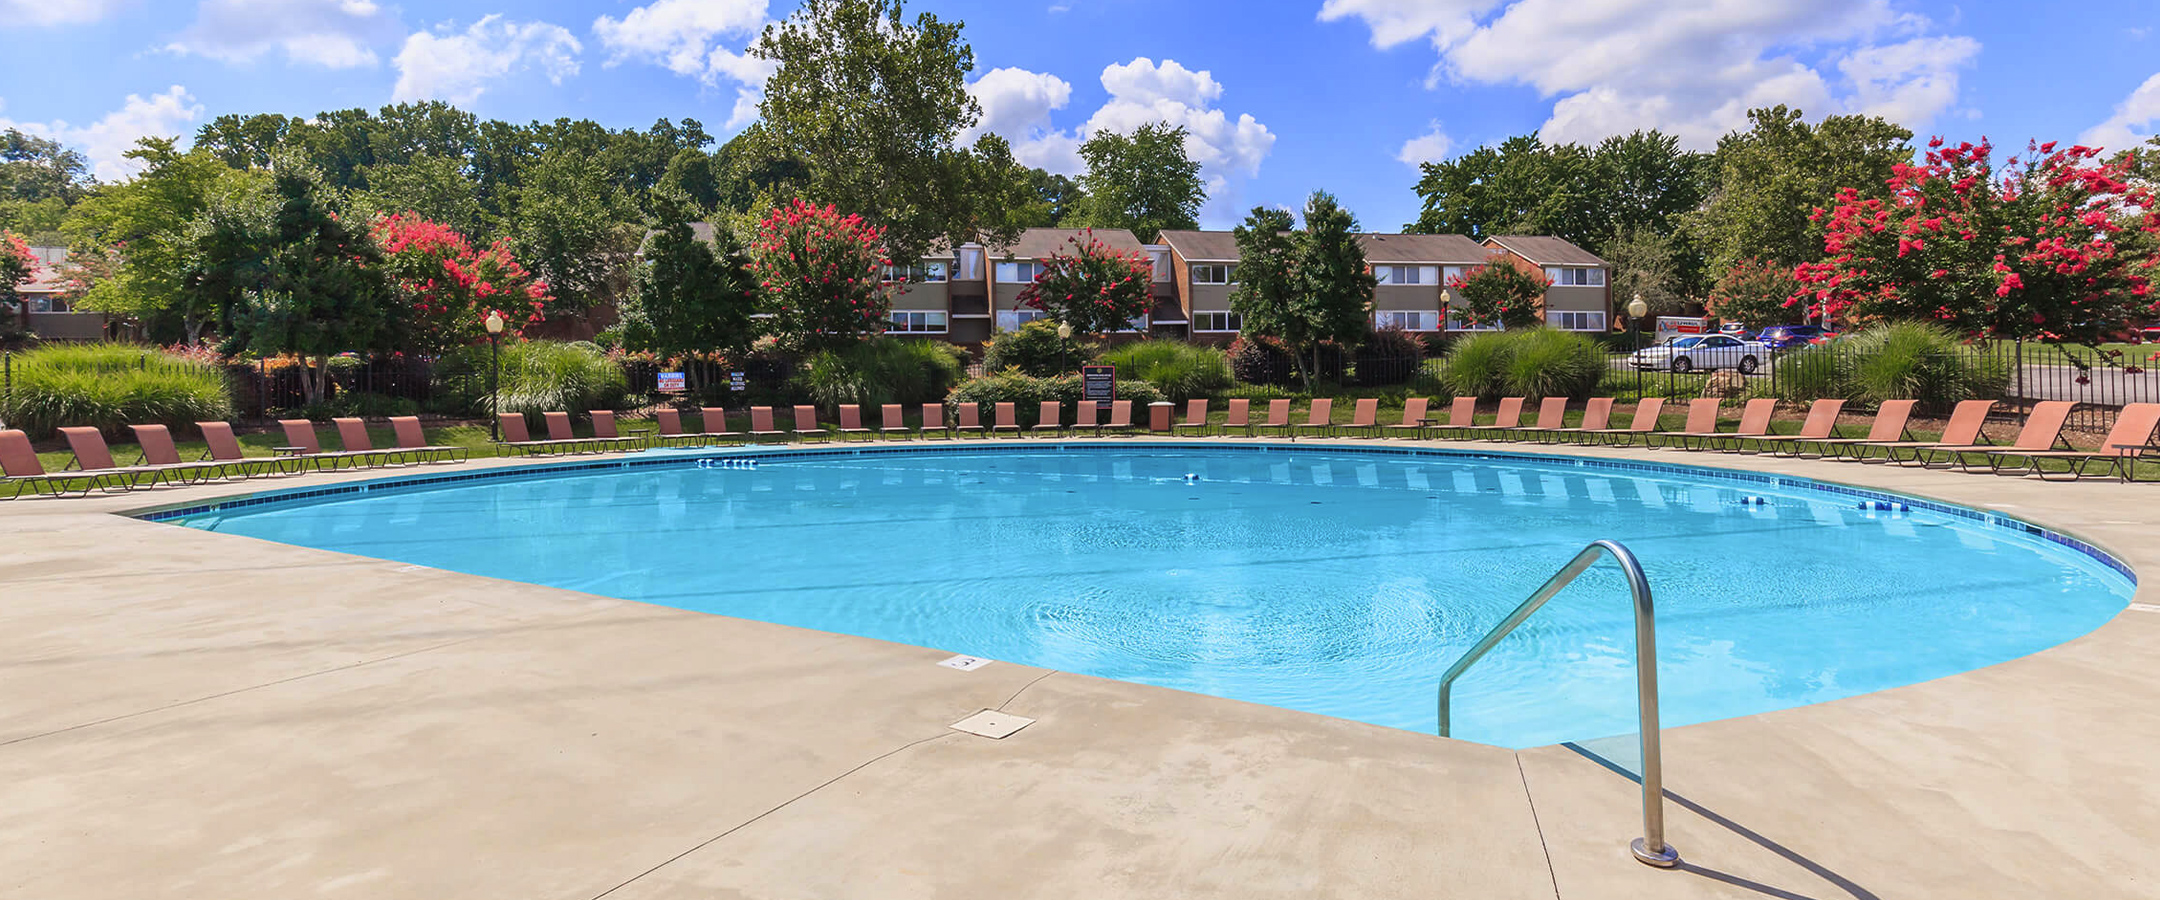 One Bedroom Apartments In Knoxville Tn Windover Apartments In Knoxville Tn